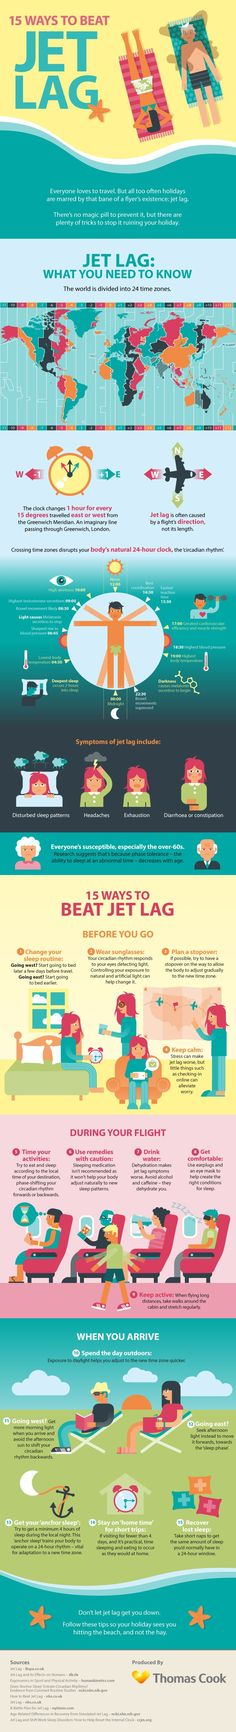 Jet lag can be a downer on an otherwise exciting vacation. We found a couple infographics that illustrate some of the best ways to beat jet lag. Take a look at these tips to help you fight through jet lag when you travel.